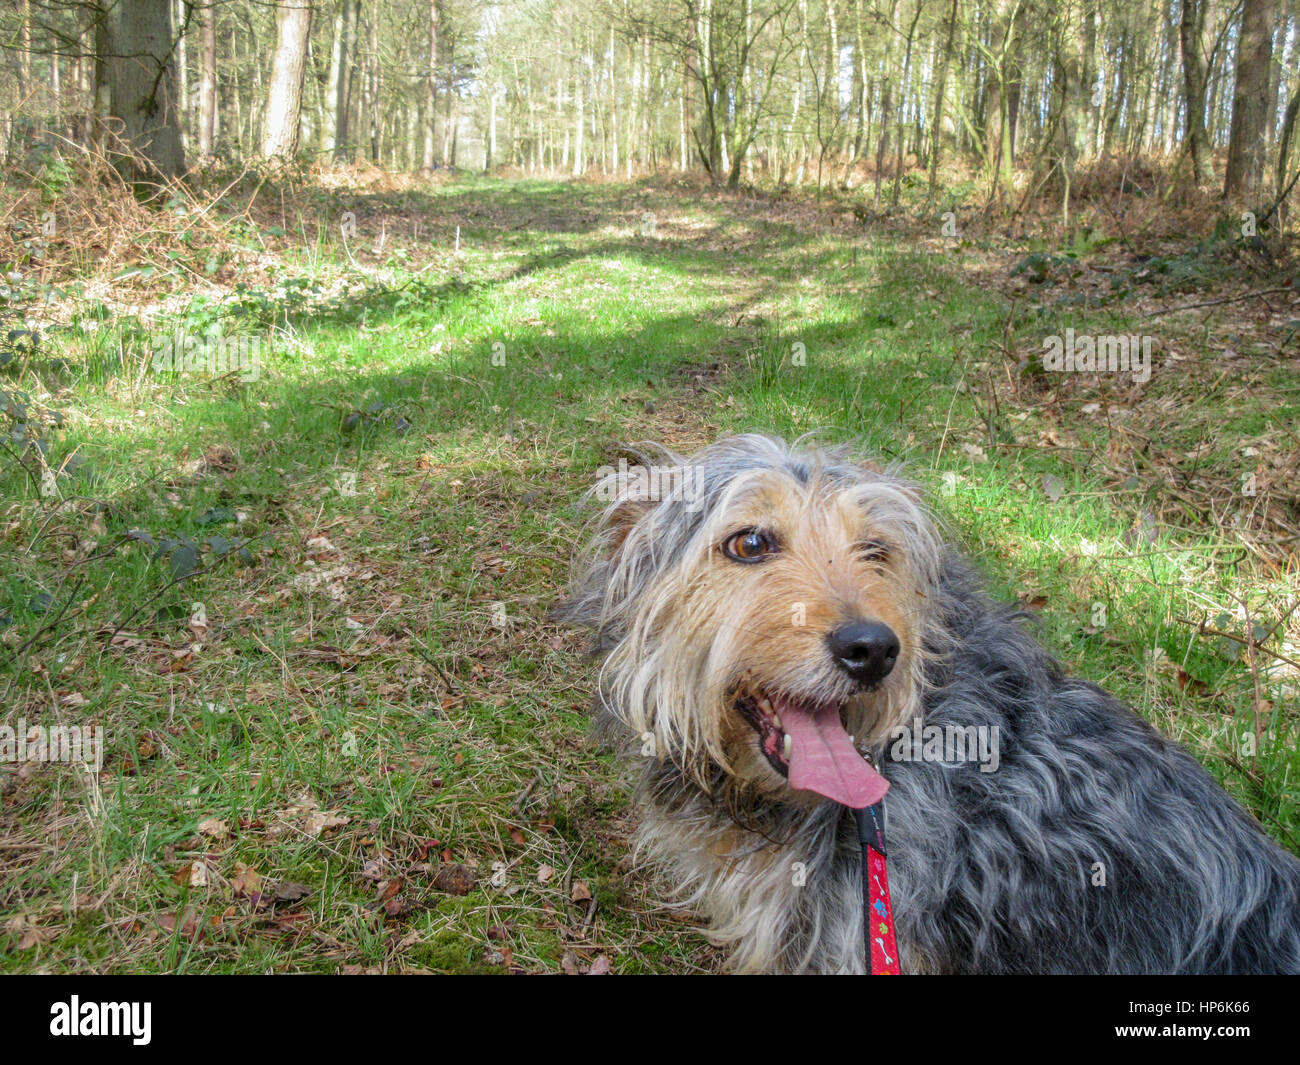 A relaxed dog taking a well earned break whilst walking through the Hands Leaslow woods near the hamlet of Chartley - Stock Image